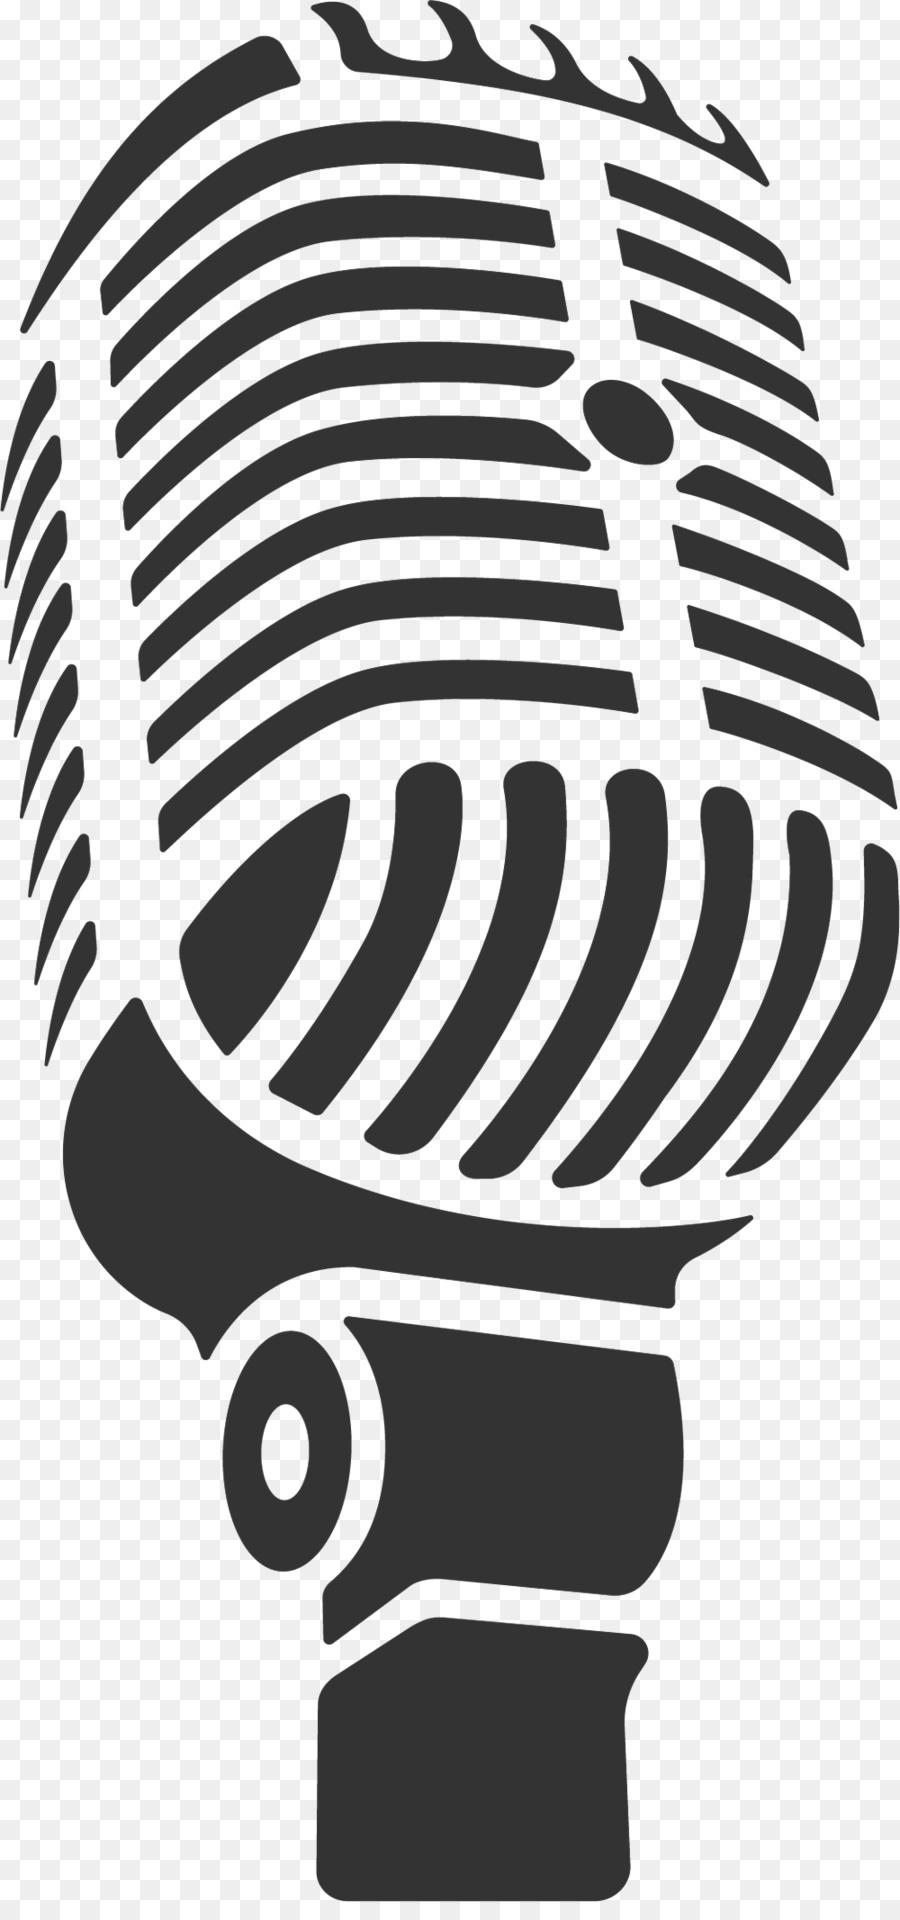 Microphone Cartoon clipart - Microphone, Sound, Technology ... clip library library